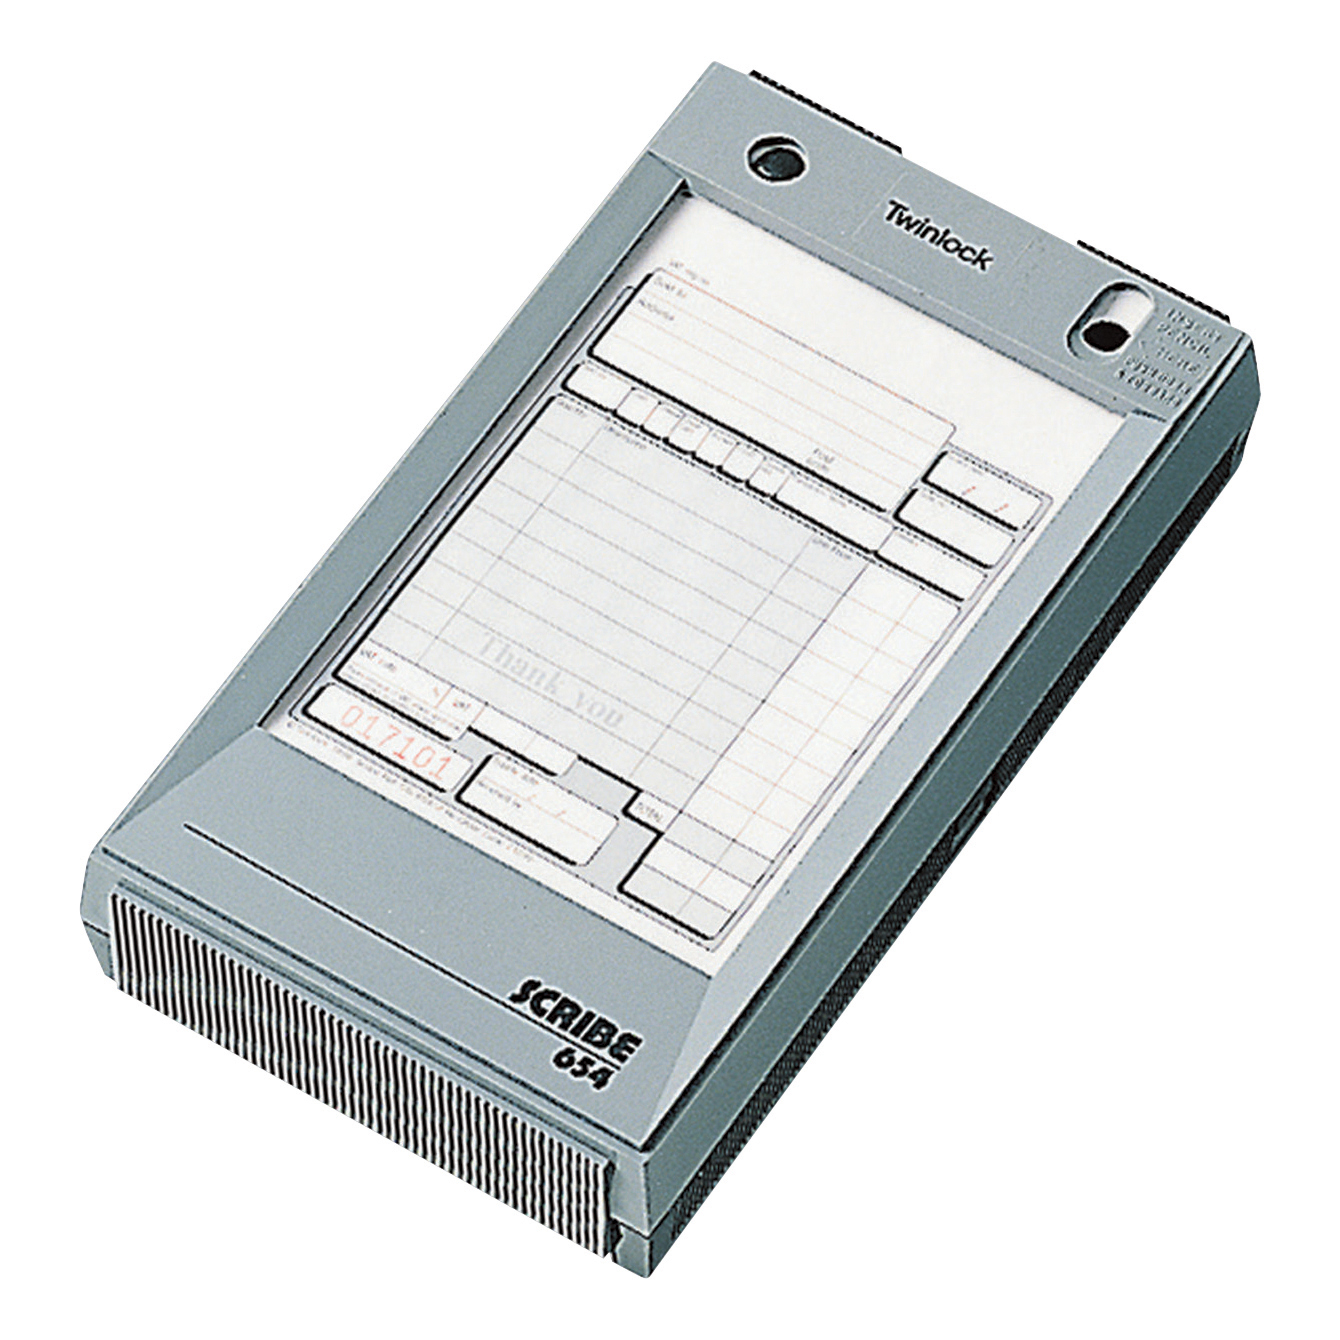 Image for Twinlock Scribe 654 Scribe Register 210x115mm for Business Forms Ref 71000